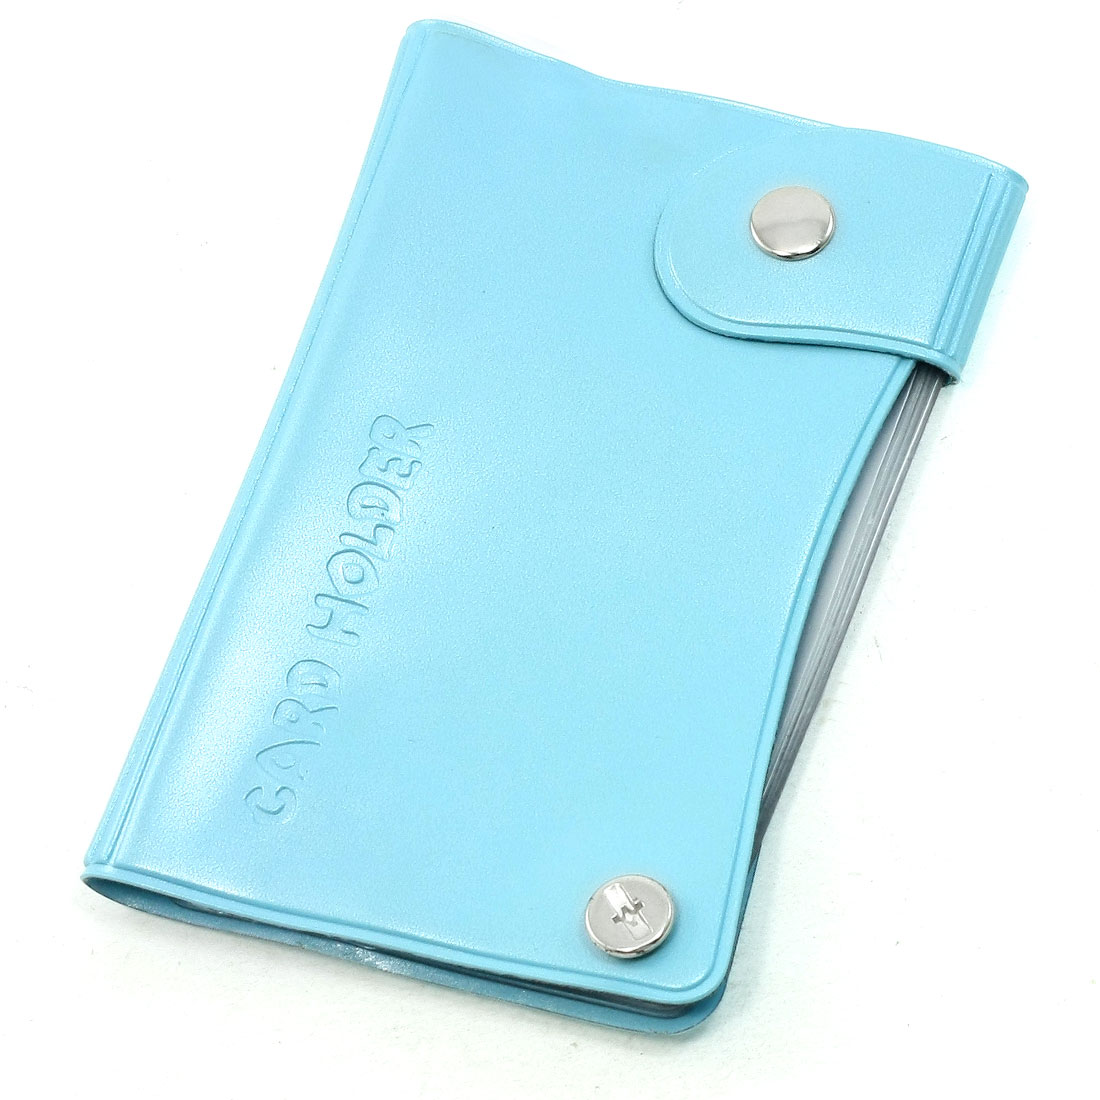 Blue Plastic Fit Size 9 x 6cm Card Holder for Business People